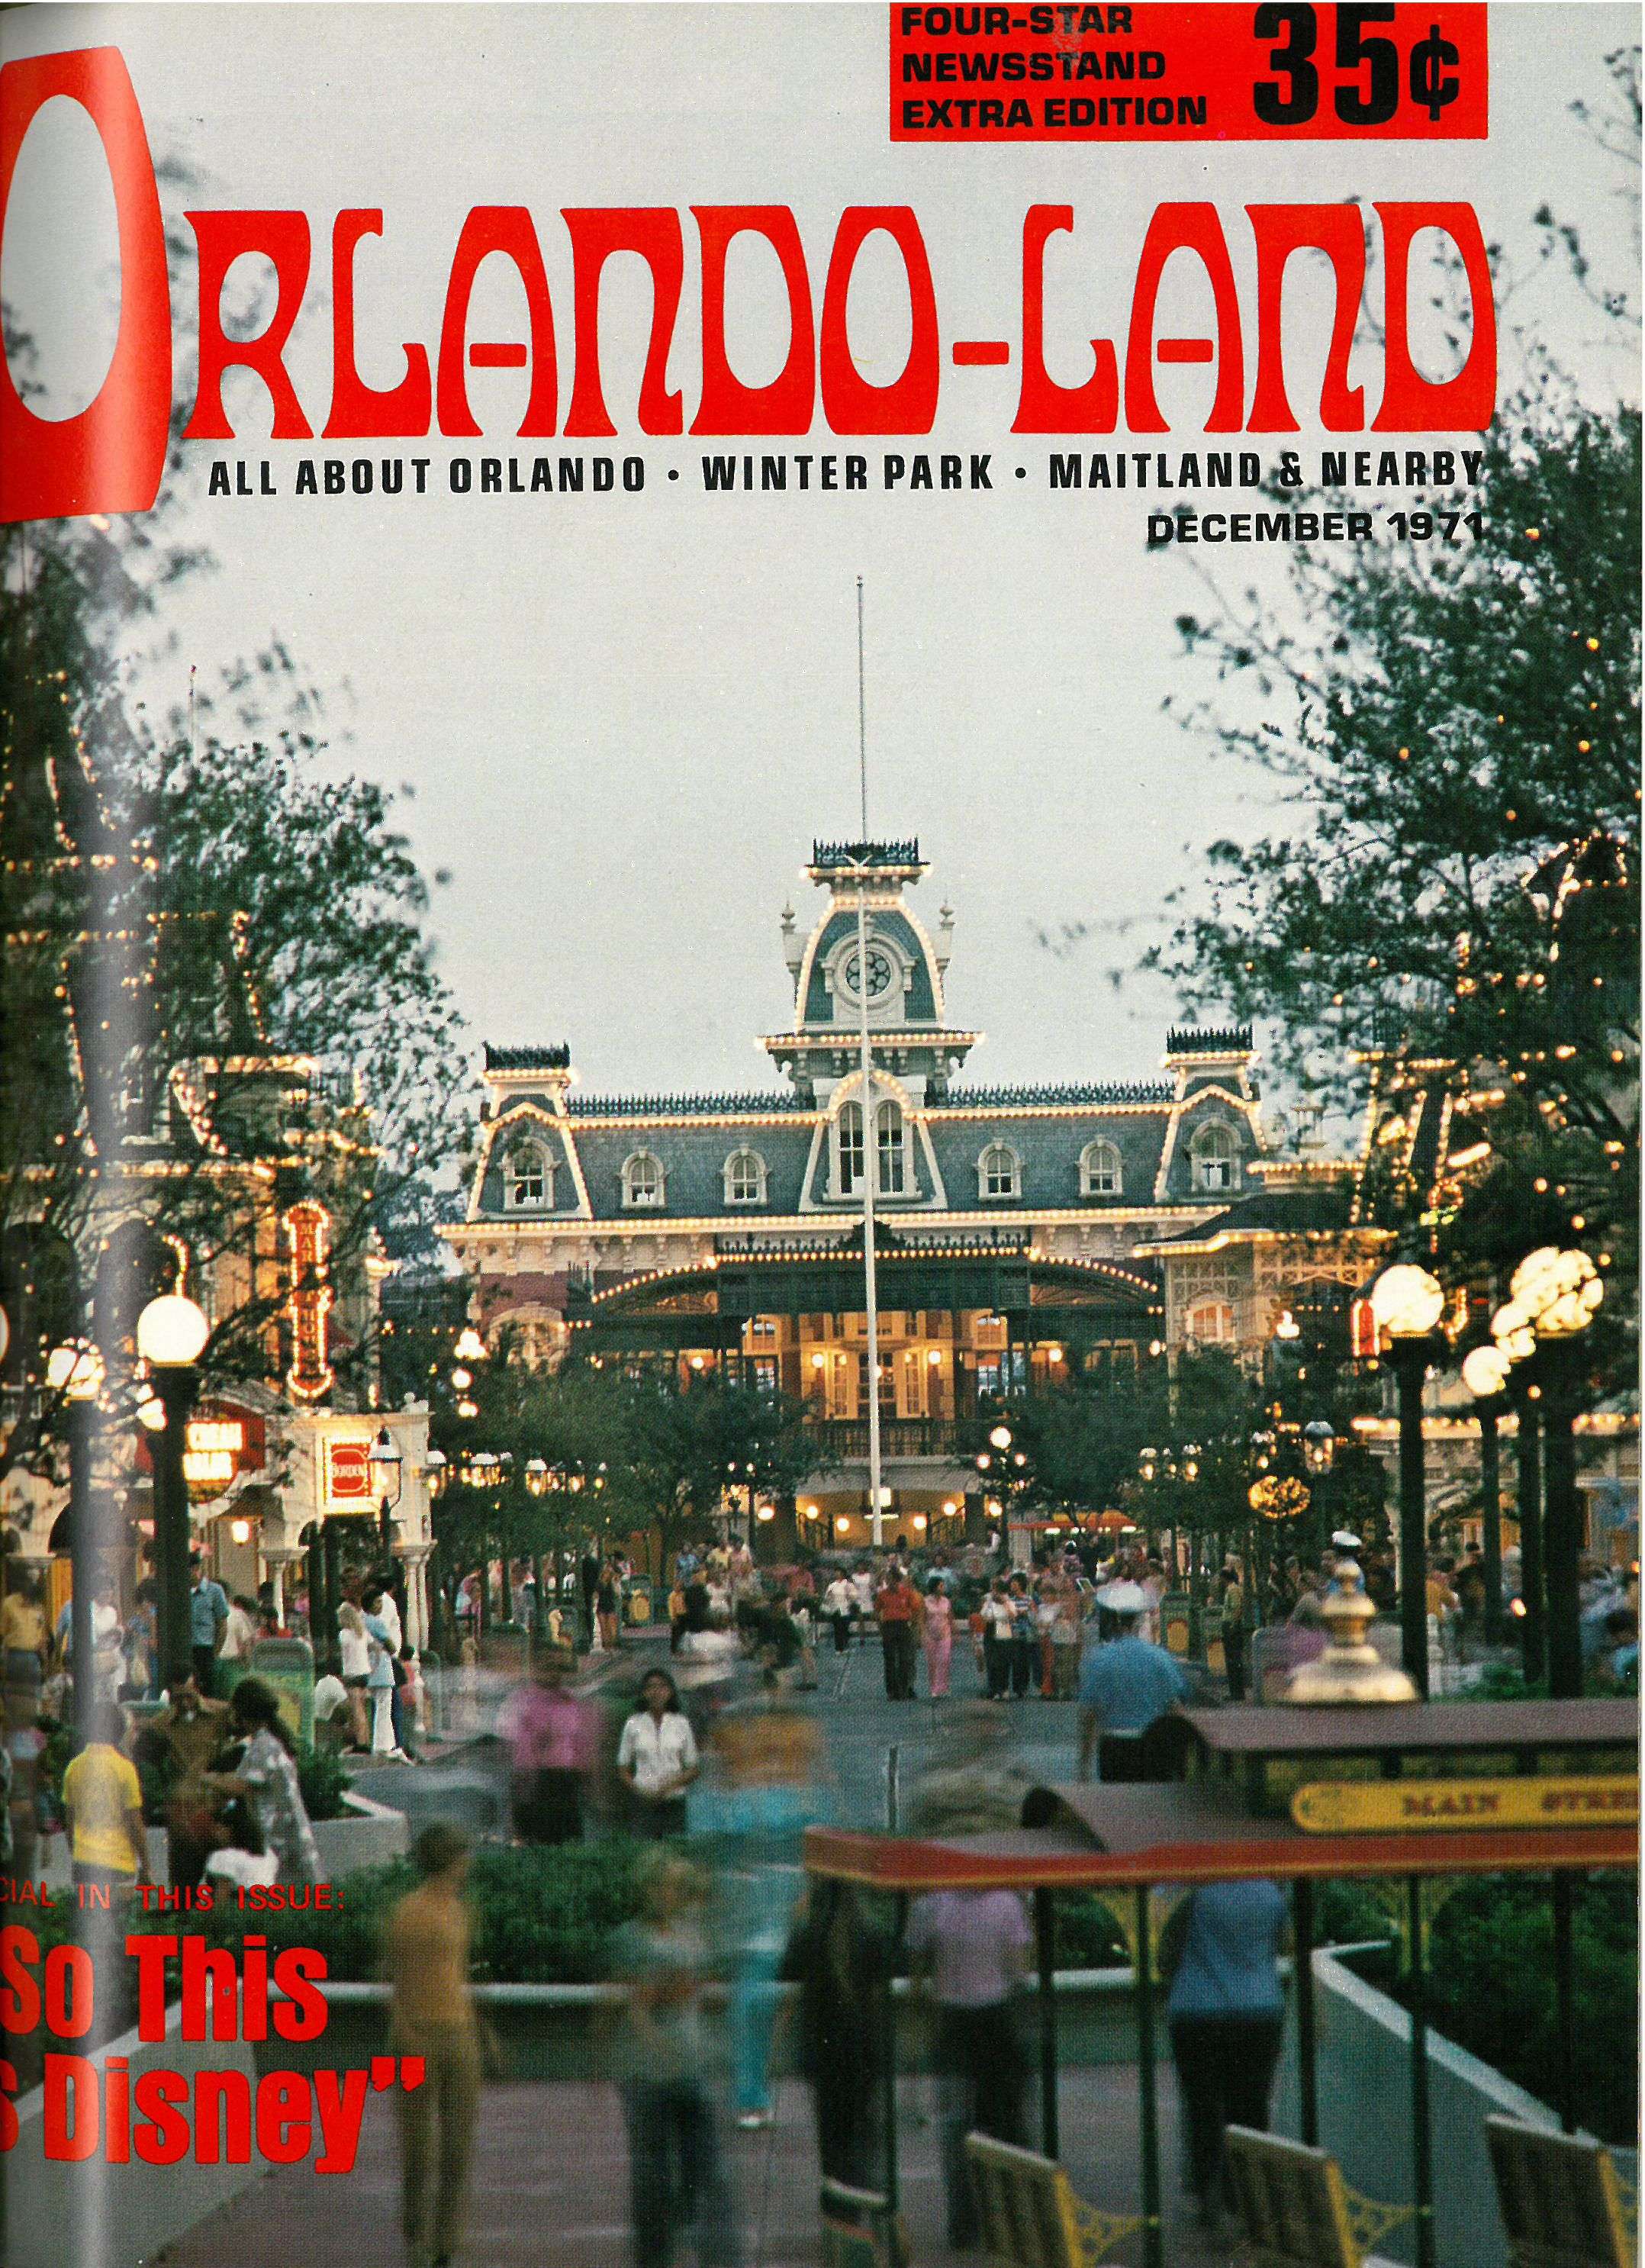 Vintage edition of Orlando magazine from December 1971